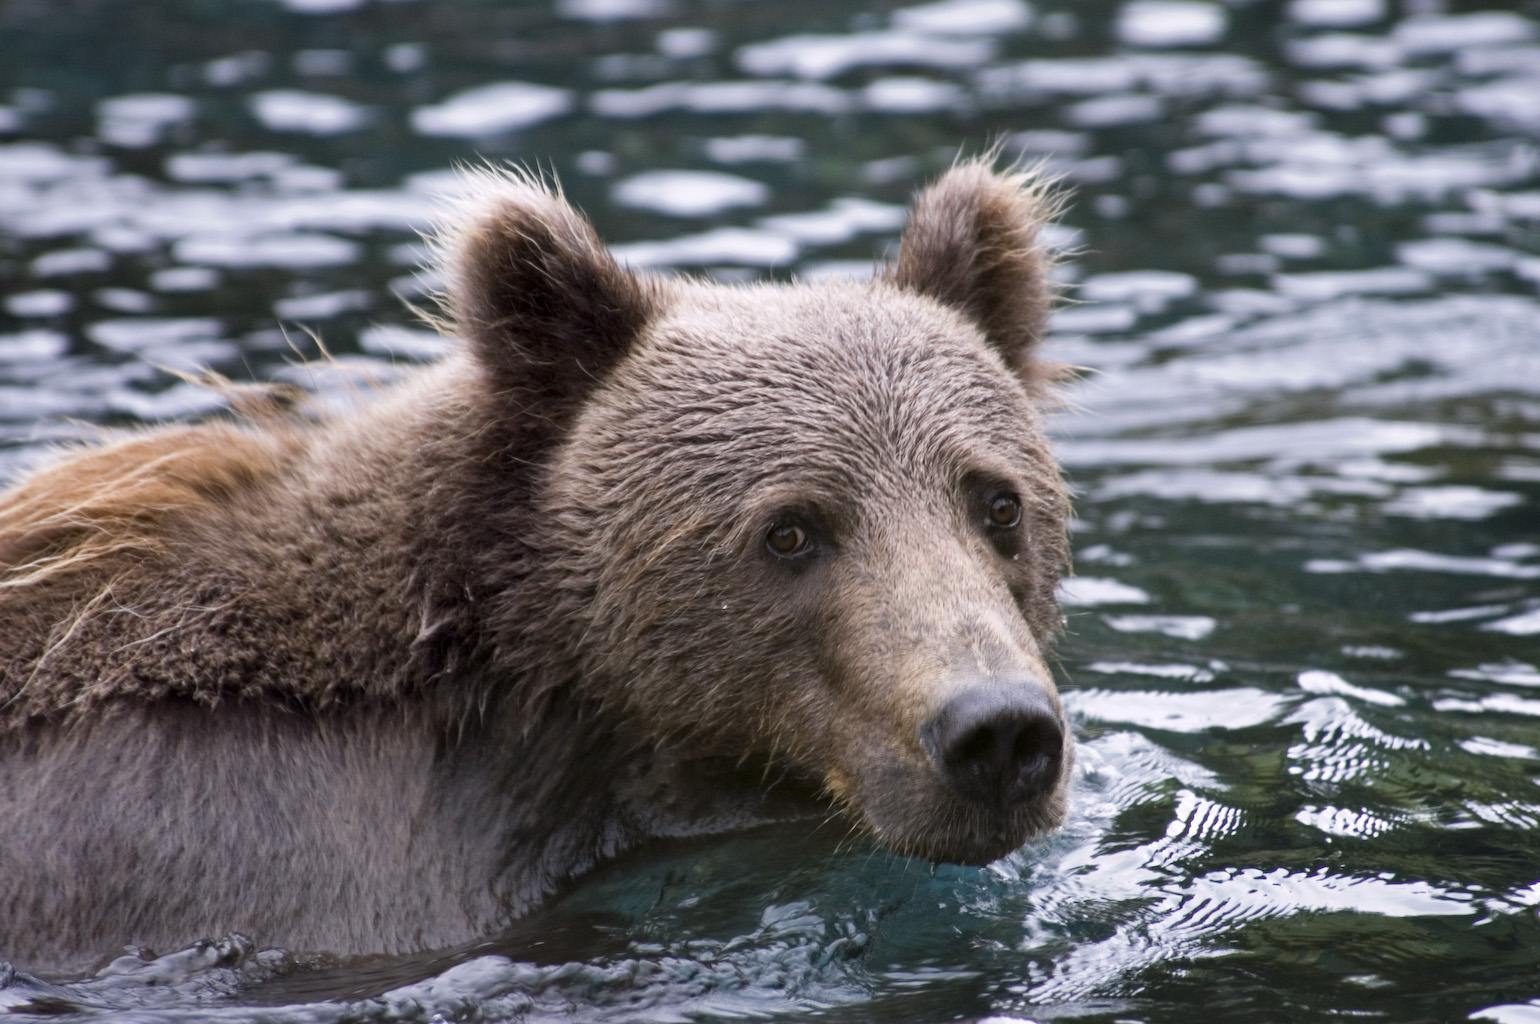 How Strong Is A Kodiak Bear, And How Fast Can They Run